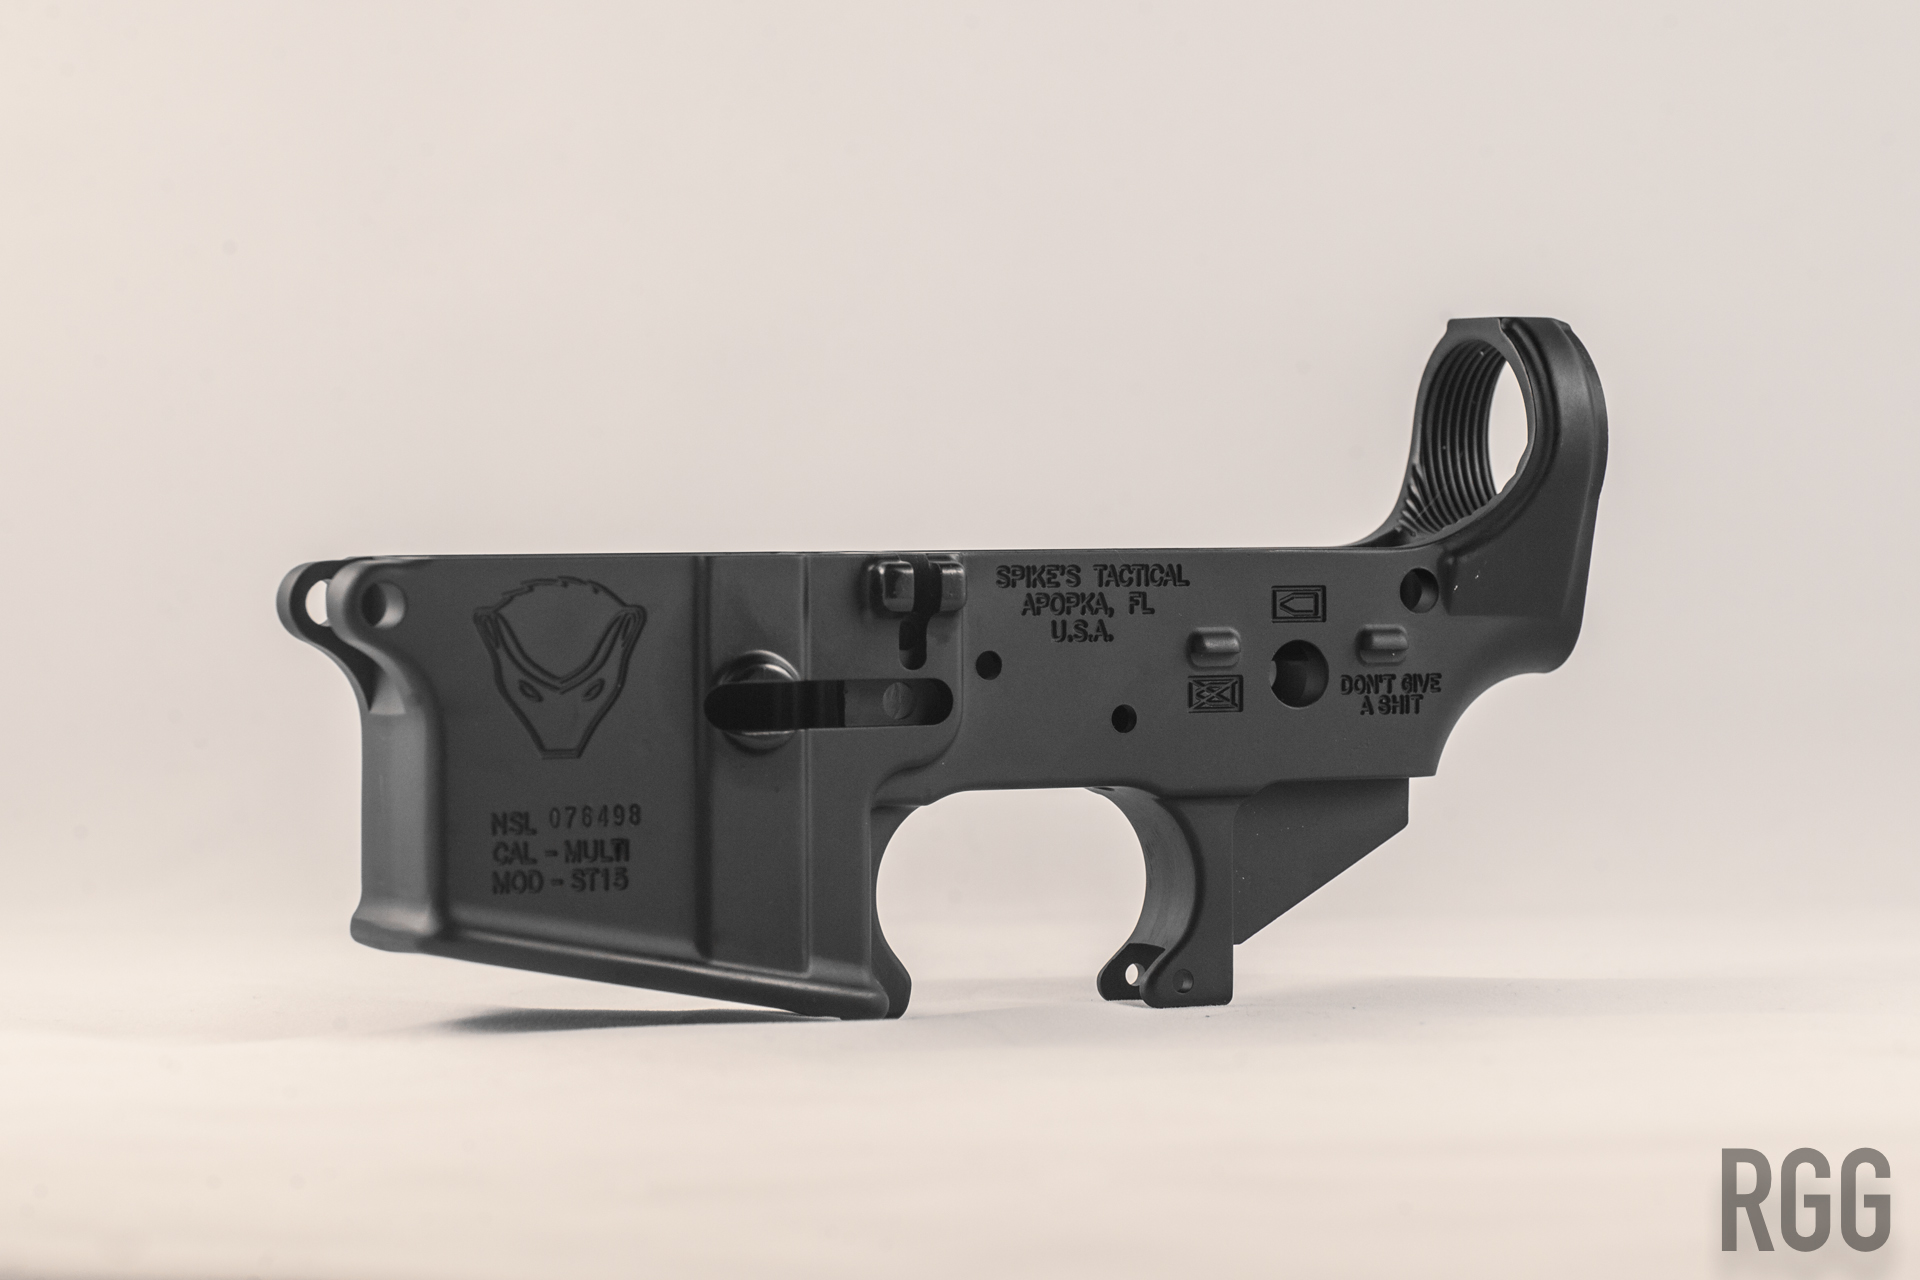 A Spike's Tactical Lower Receiver. The lower receiver 'receives' the operating components of the AR.